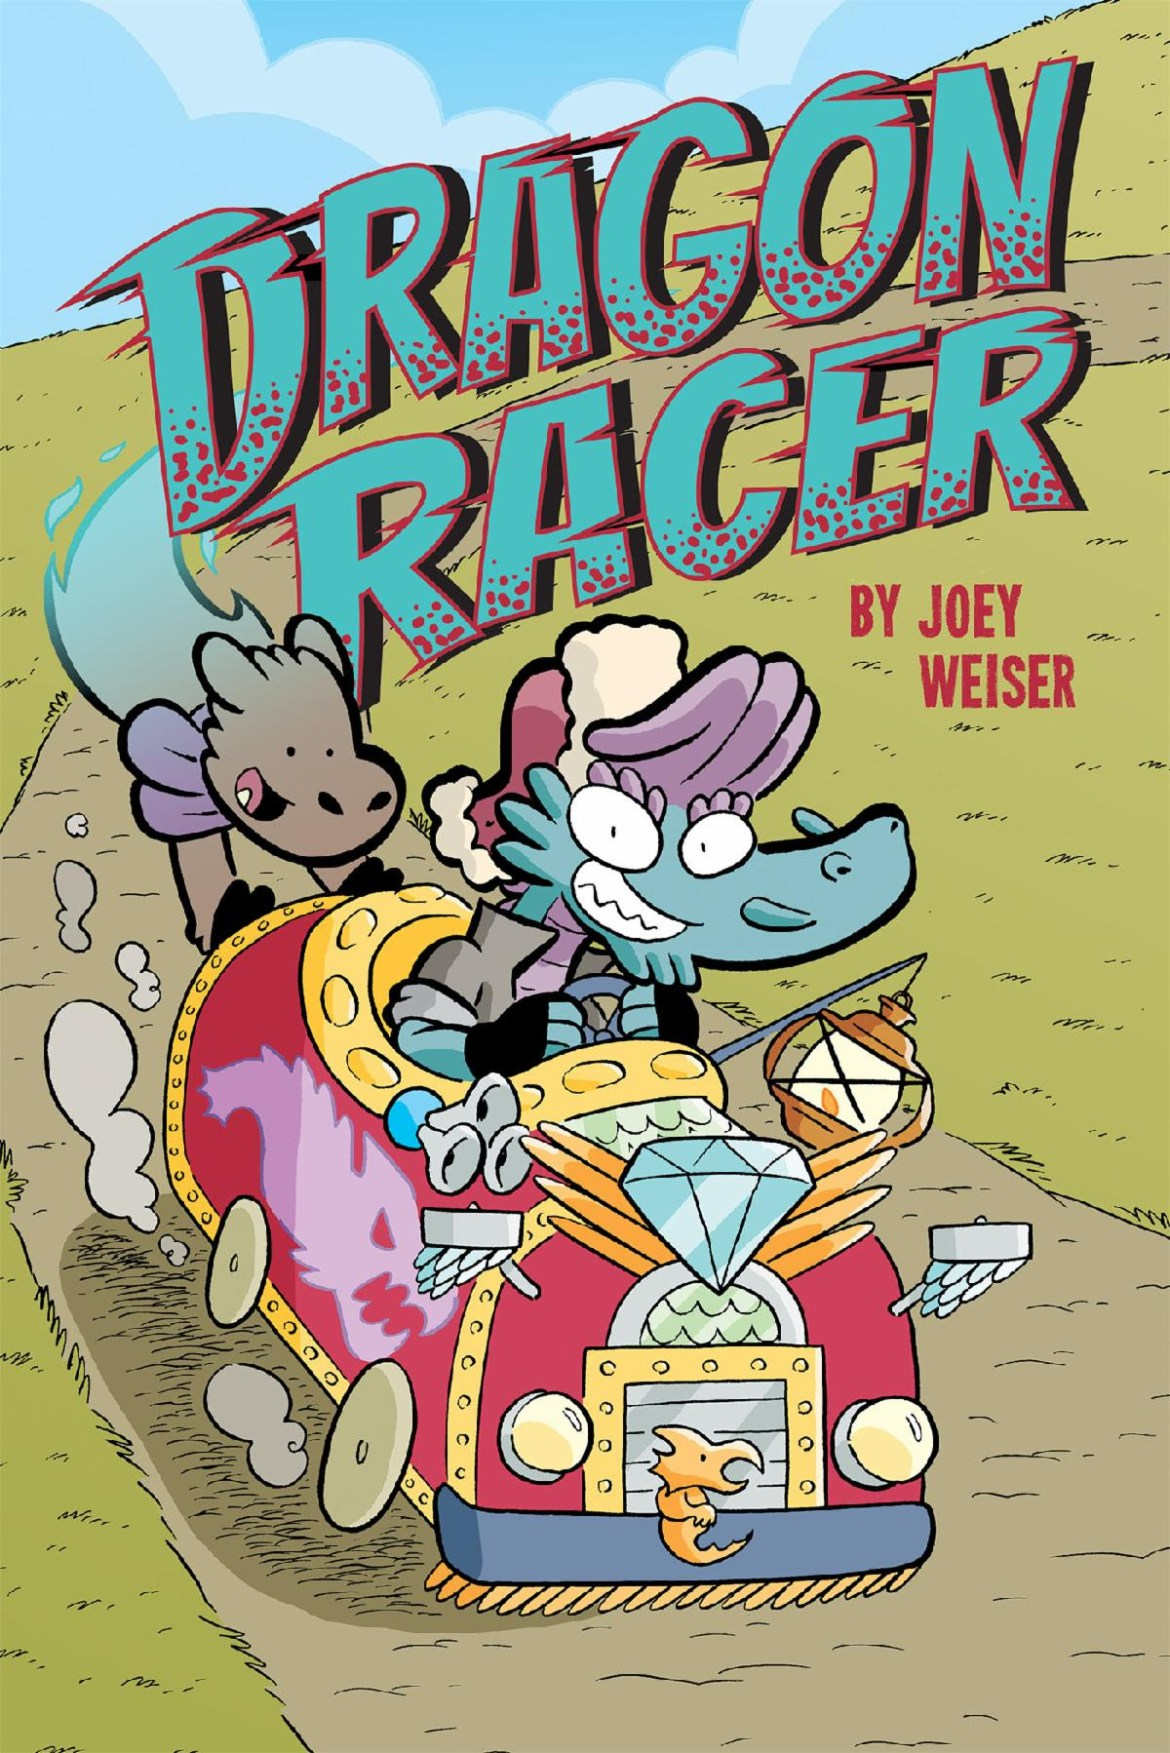 fdade01e-2927-44a0-9c56-c1e2e0c4e171 Oni-Lion Forge announce Summer 2021 children's and young adult graphic novels